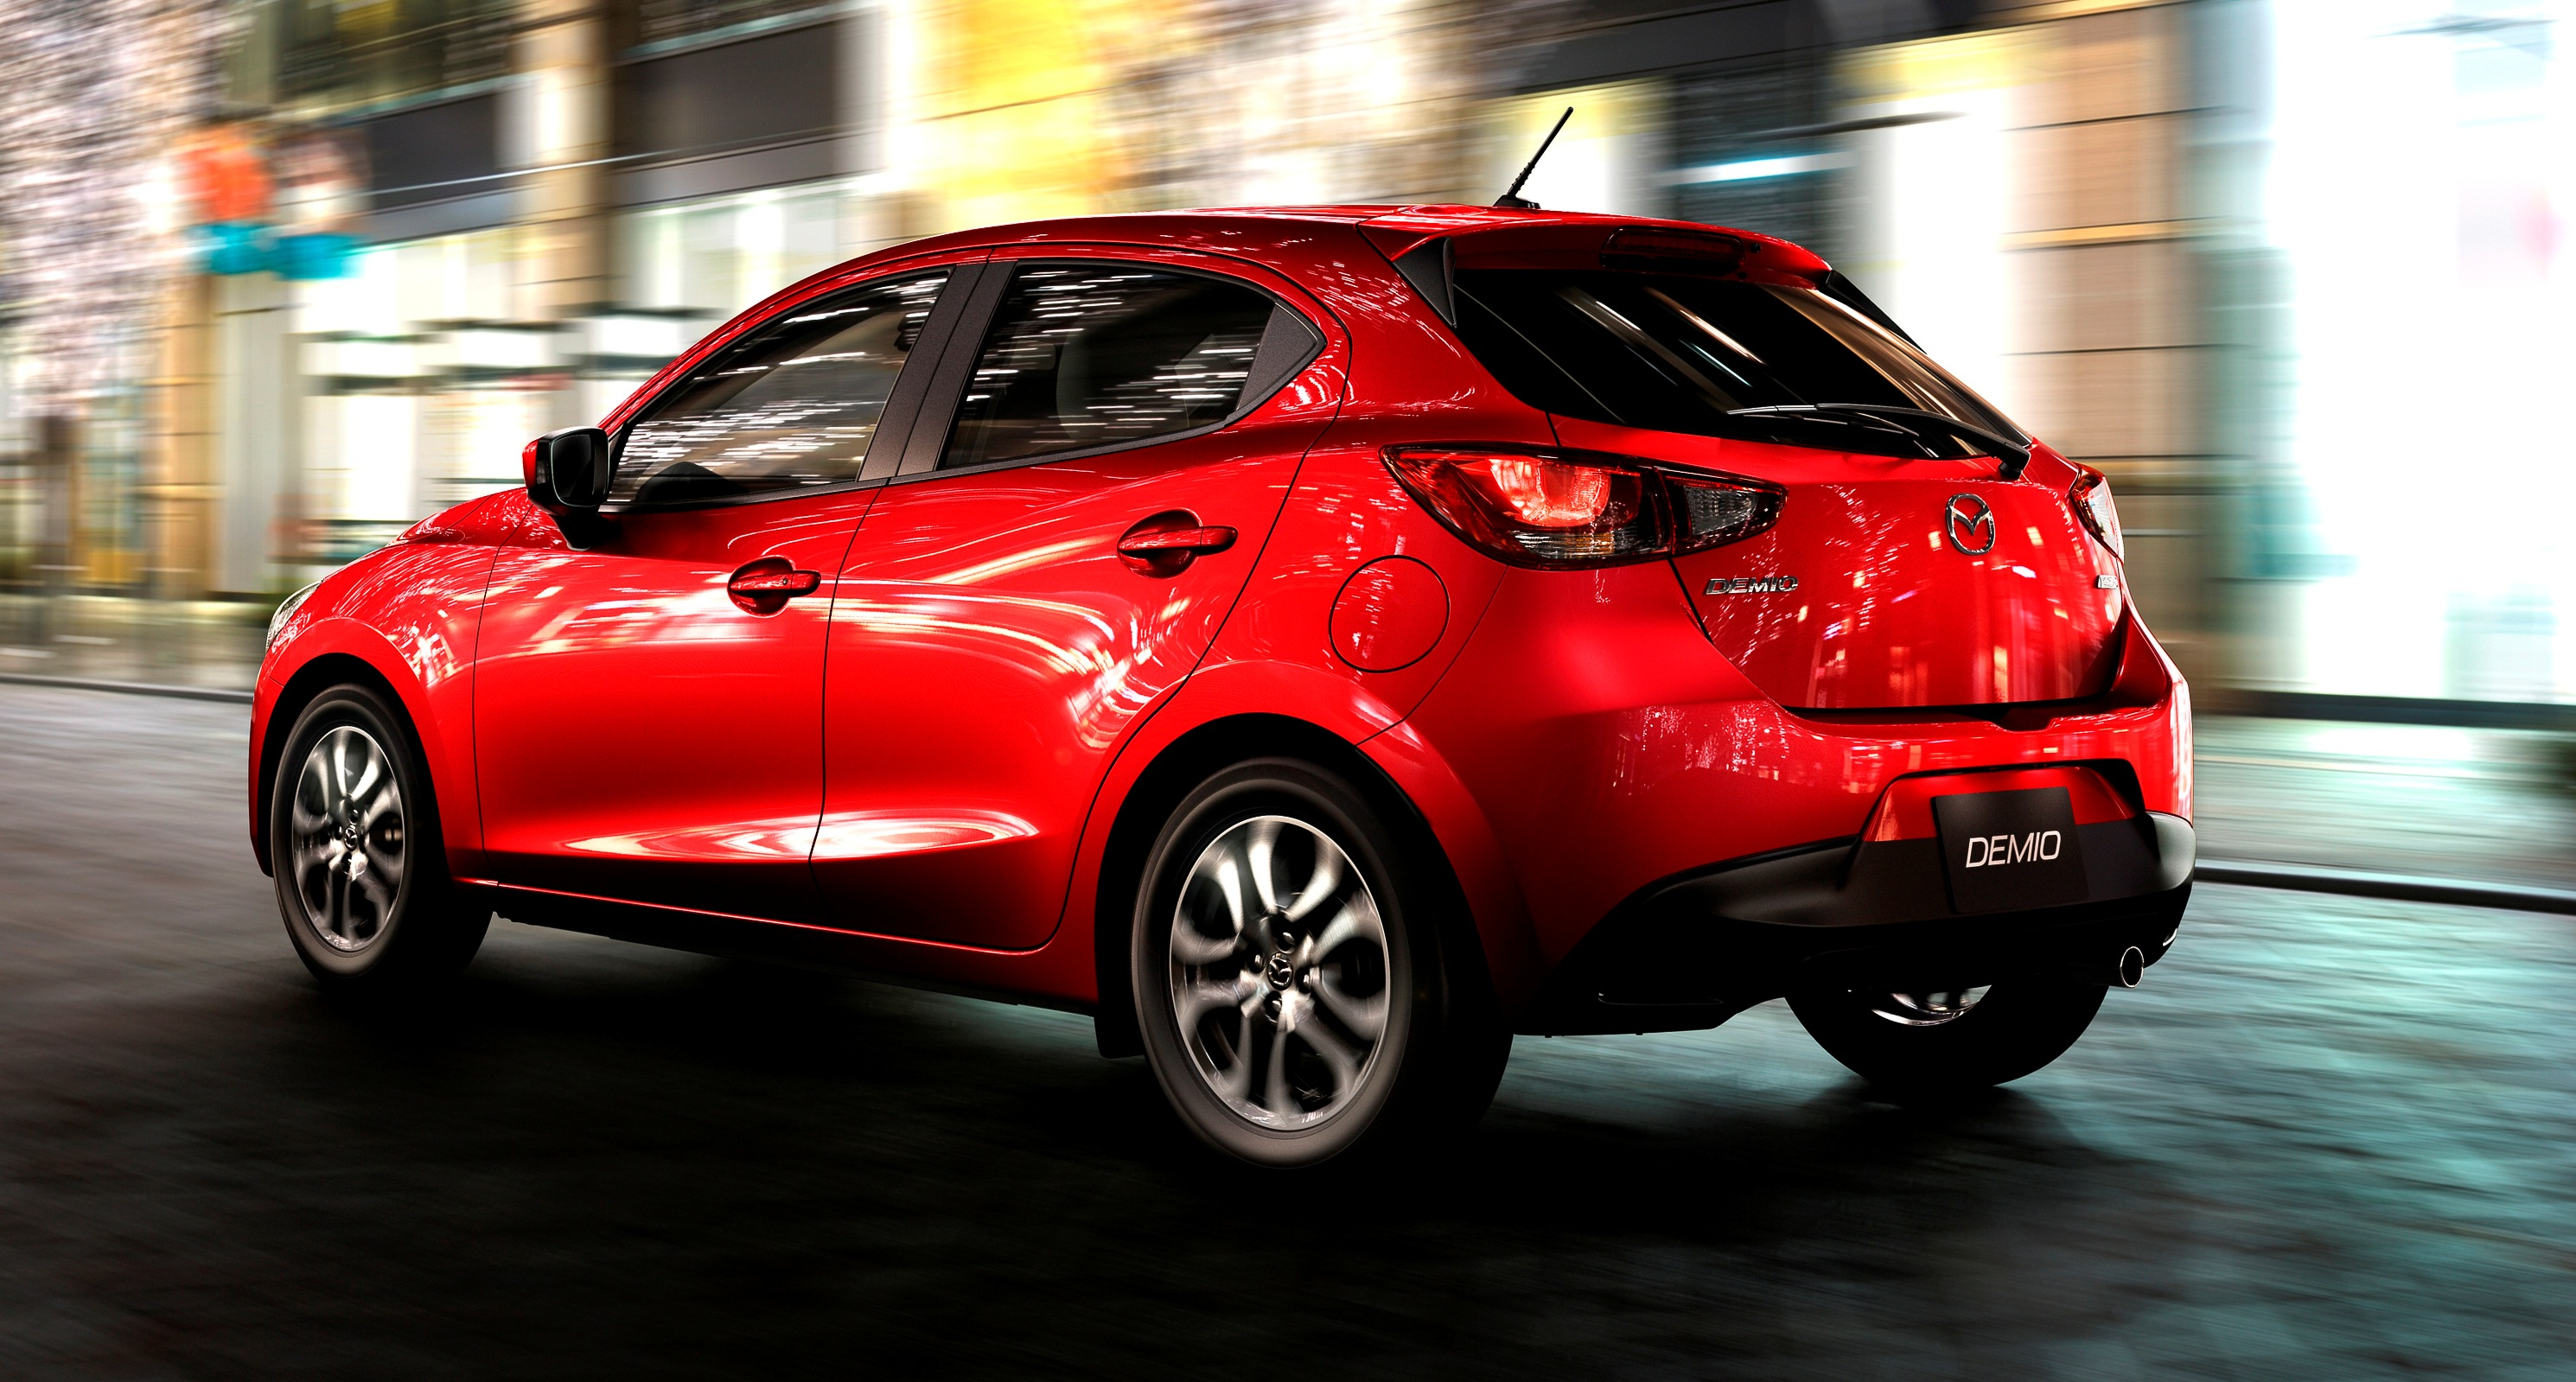 2016 mazda2 first photos upmarket new grille and cabin highlight changes. Black Bedroom Furniture Sets. Home Design Ideas